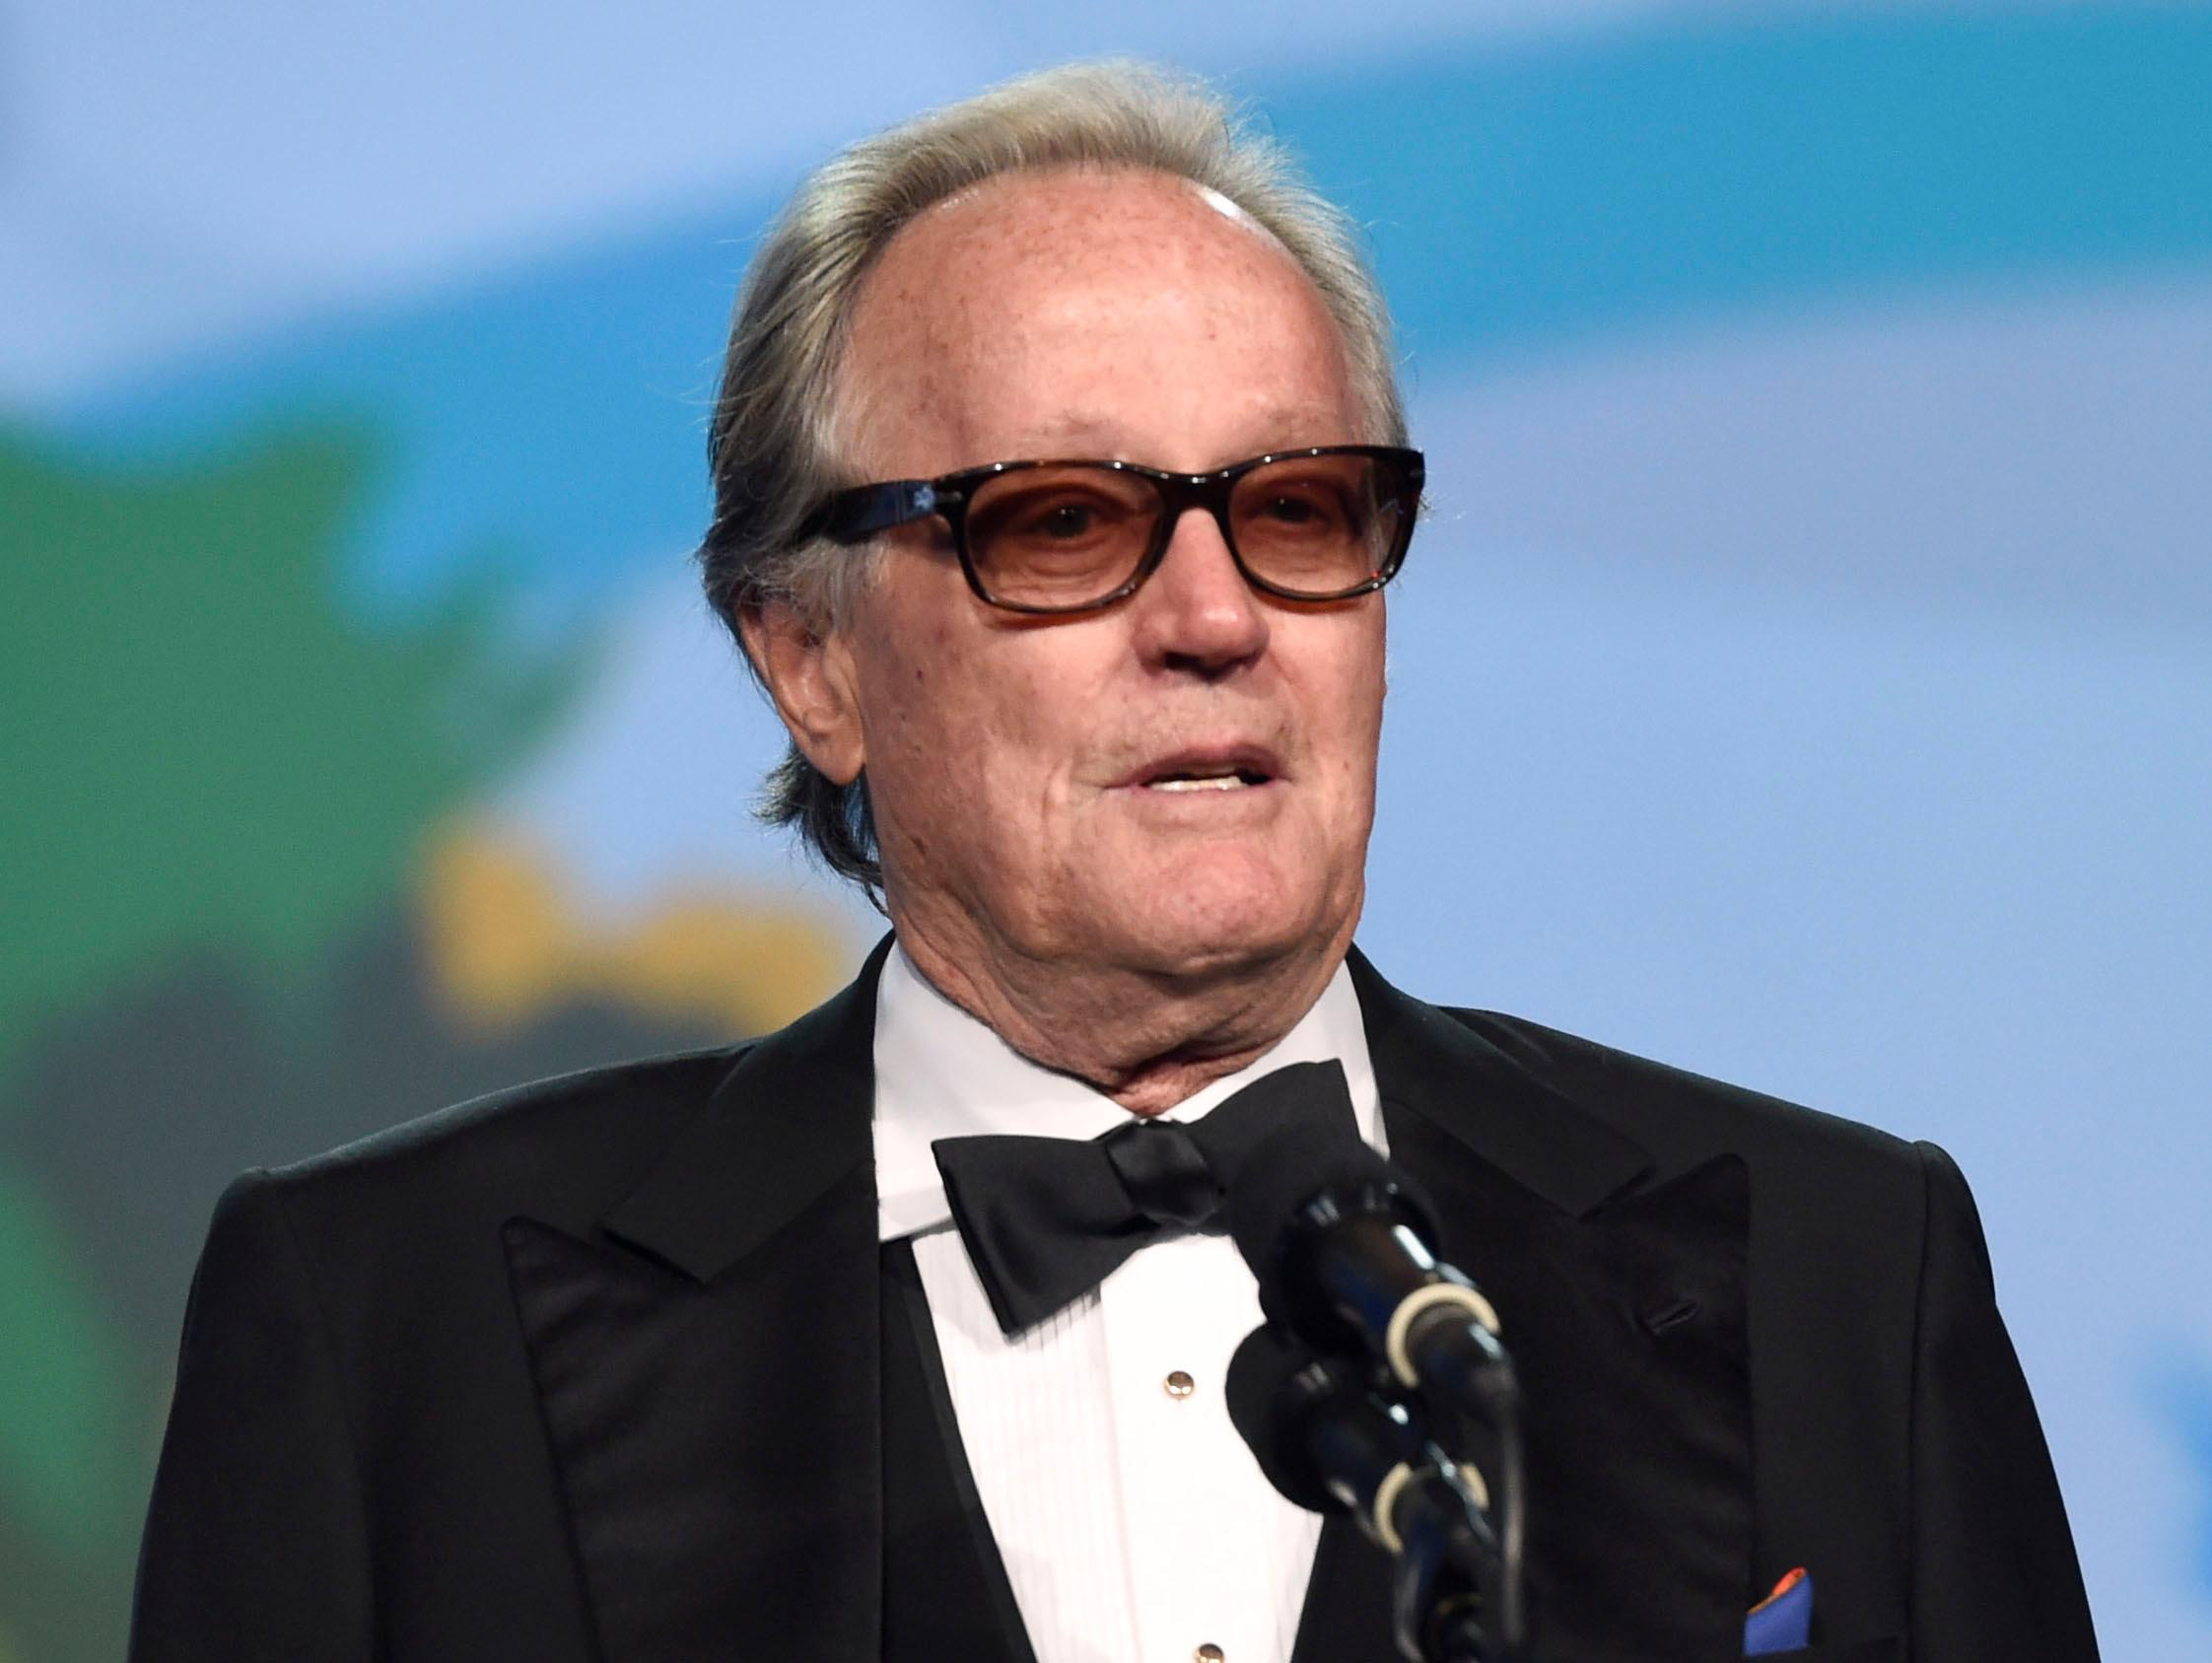 "FILE - In this Jan. 2, 2018 file photo, Peter Fonda presents the Desert Palm achievement award at the 29th annual Palm Springs International Film Festival in Palm Springs, Calif. Fonda has apologized for a late-night Twitter rant that said 12-year-old Barron Trump should be ripped from ""his mother's arms and put in a cage with pedophiles."" The all-capitals tweet early Wednesday went on to call President Donald Trump an expletive. Fonda later deleted the tweet and drew sharp rebukes from first lady Melania Trump and Donald Trump Jr. (Photo by Chris Pizzello/Invision/AP, File)"